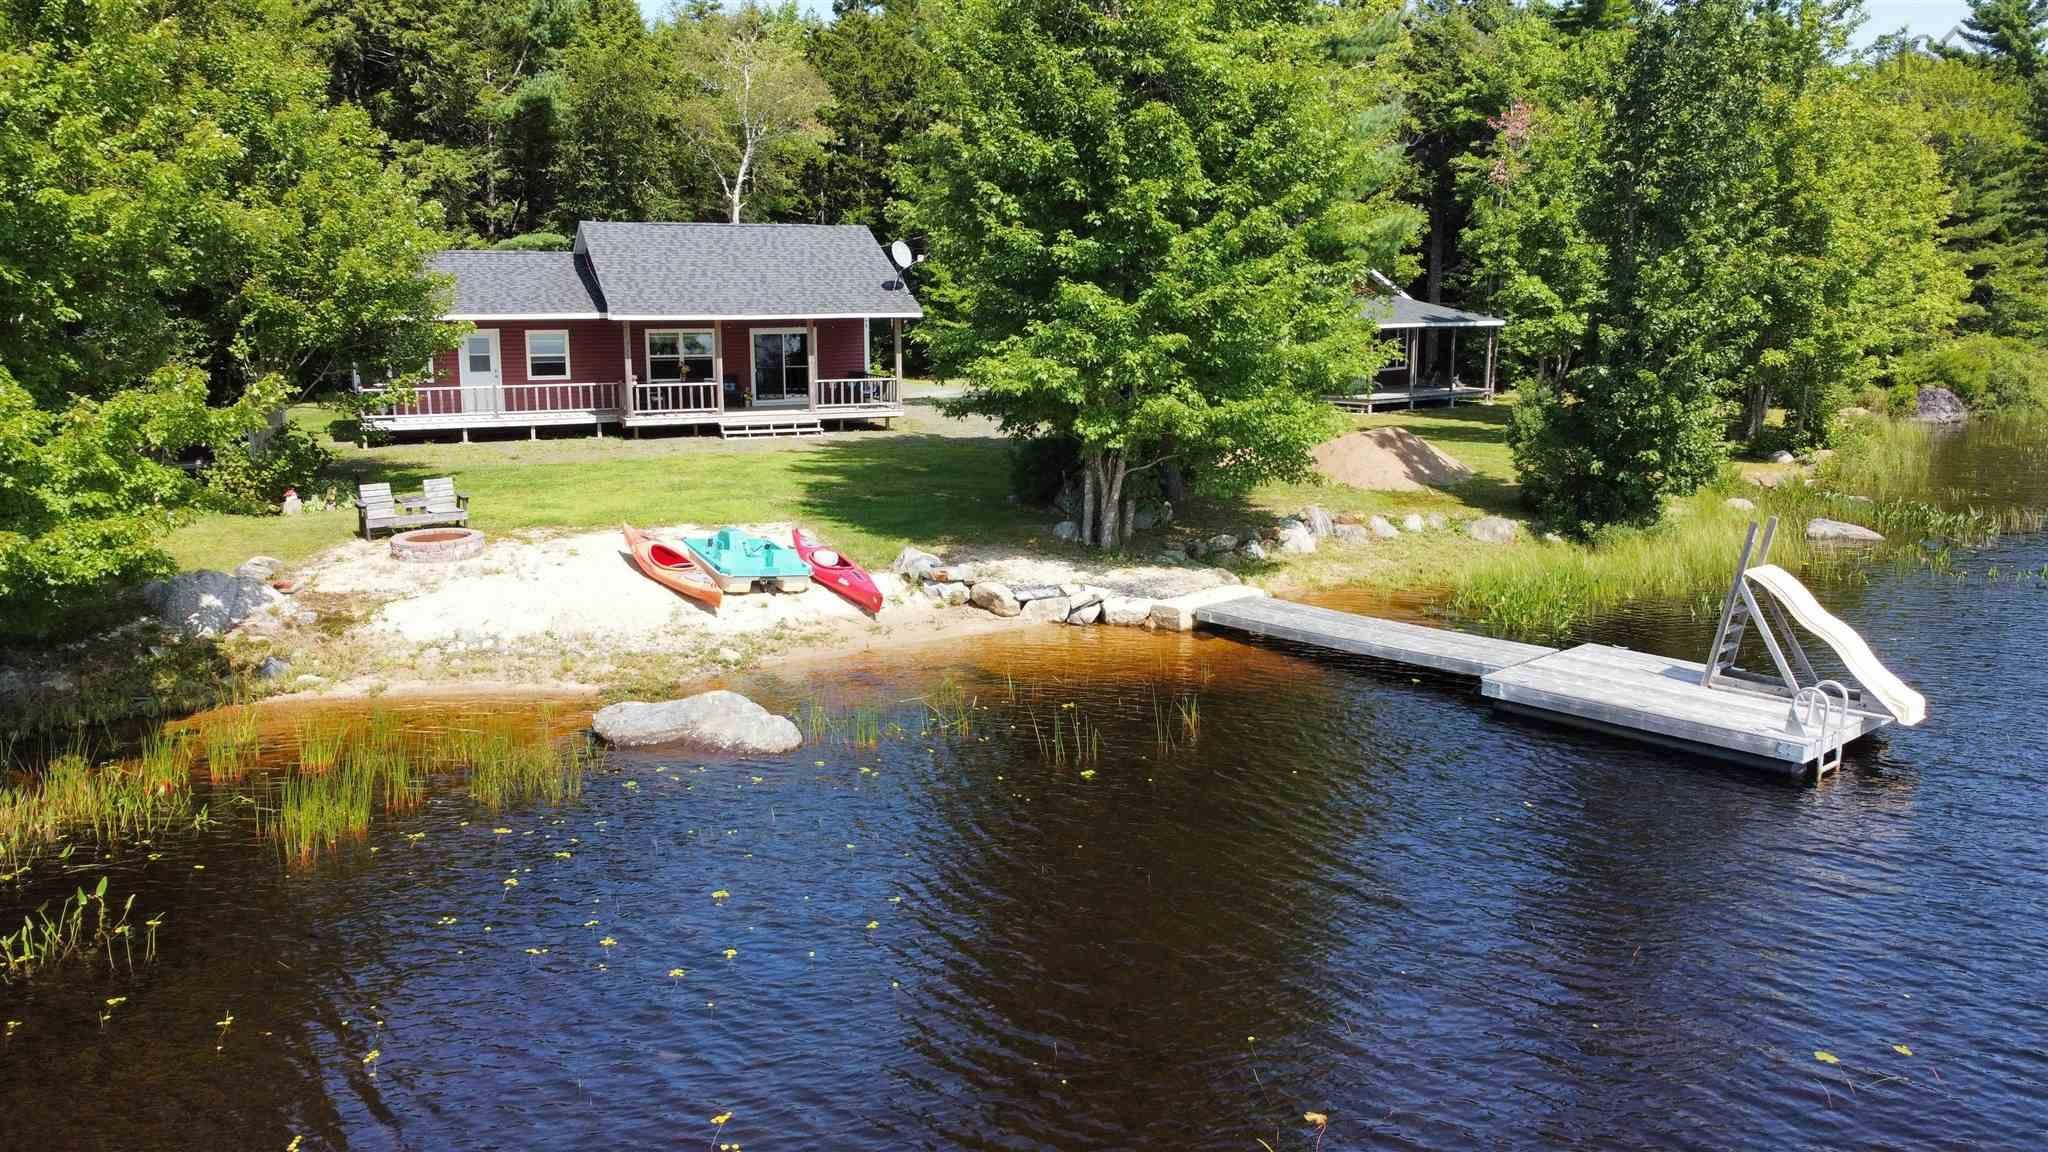 Main Photo: 135 JIMS BOULDER Road in North Range: 401-Digby County Residential for sale (Annapolis Valley)  : MLS®# 202121296